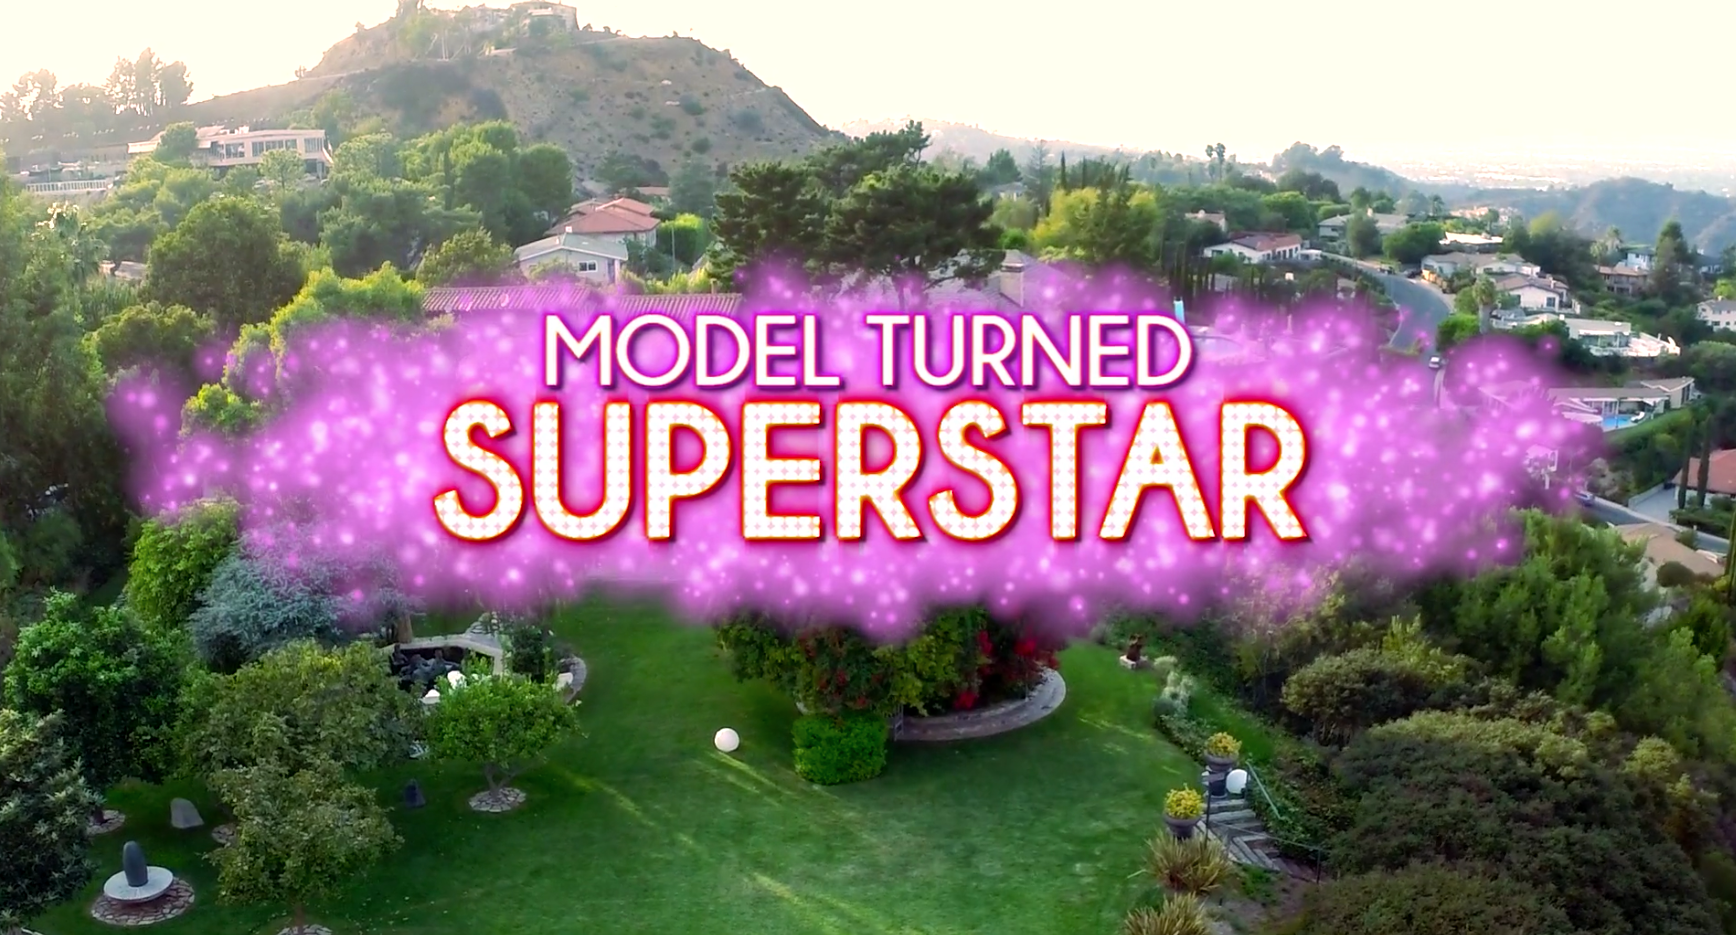 Model Turned Superstar [Trailer]